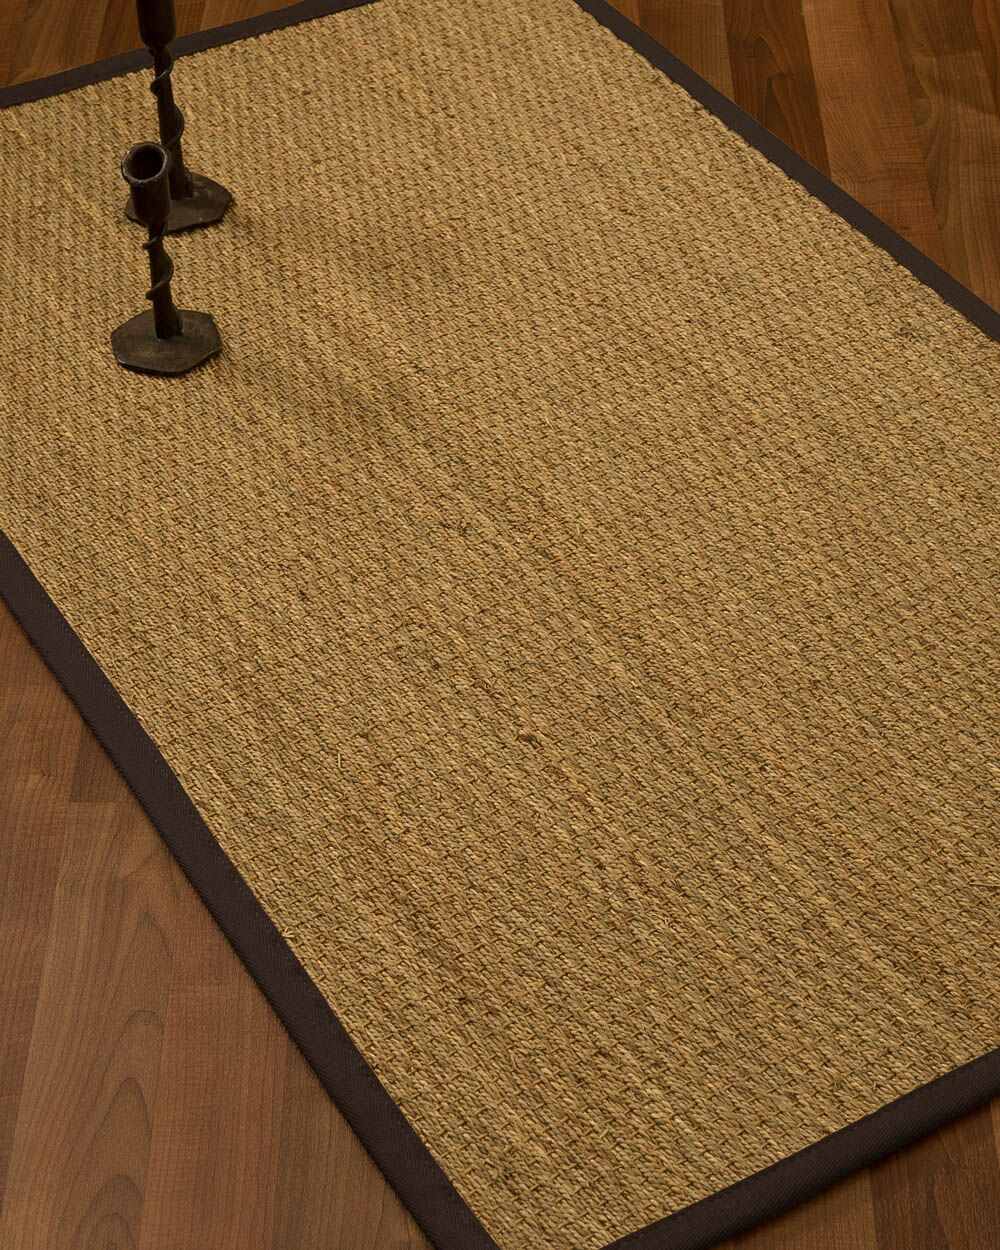 Vanmatre Border Hand-Woven Beige/Fudge Area Rug Rug Size: Rectangle 12' x 15', Rug Pad Included: Yes